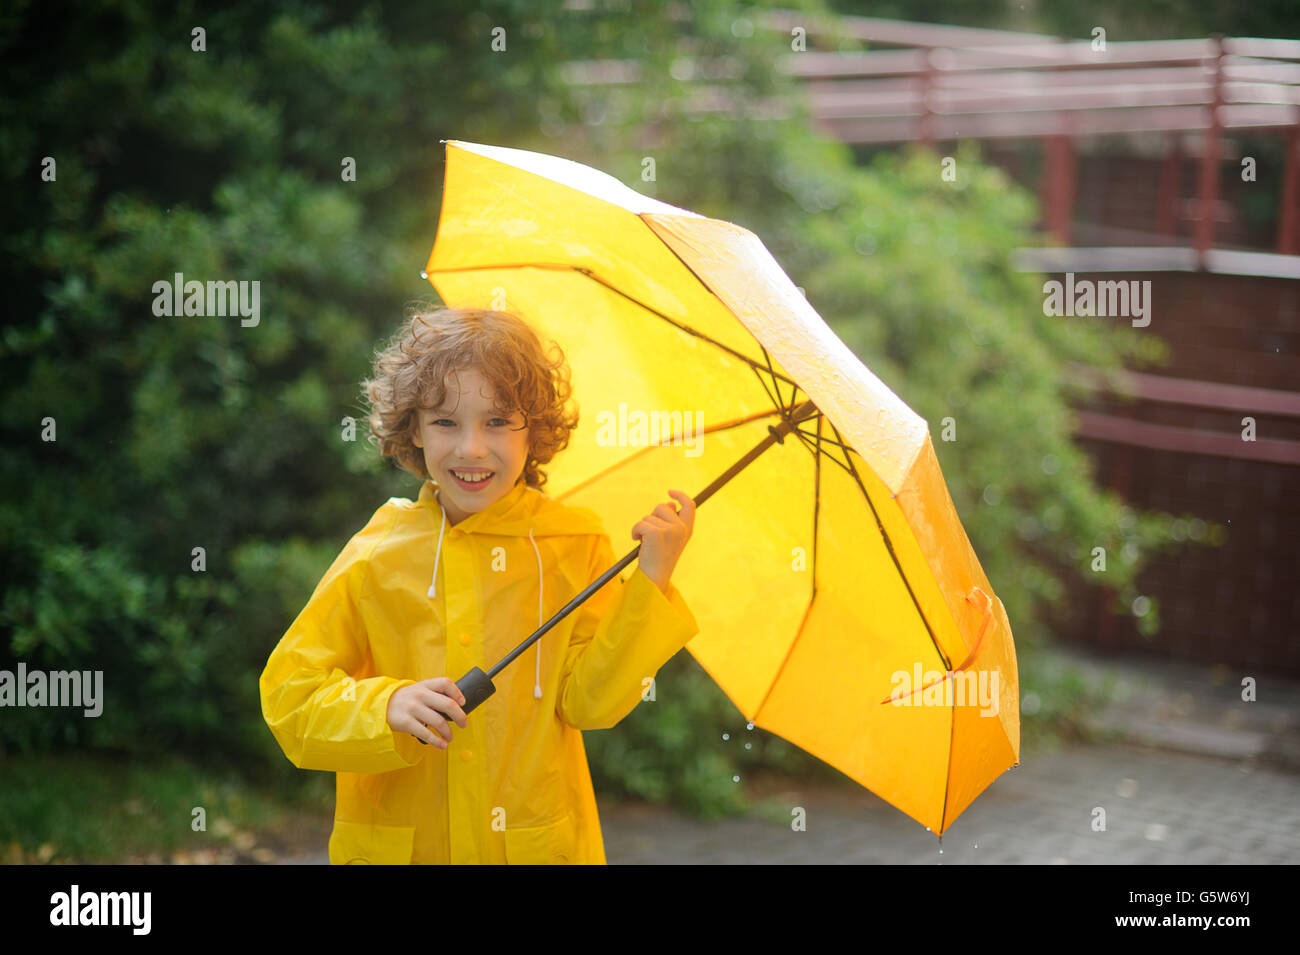 The cheerful boy with a yellow umbrella is in the yard under a rain. He holds an open yellow umbrella. Large drops - Stock Image